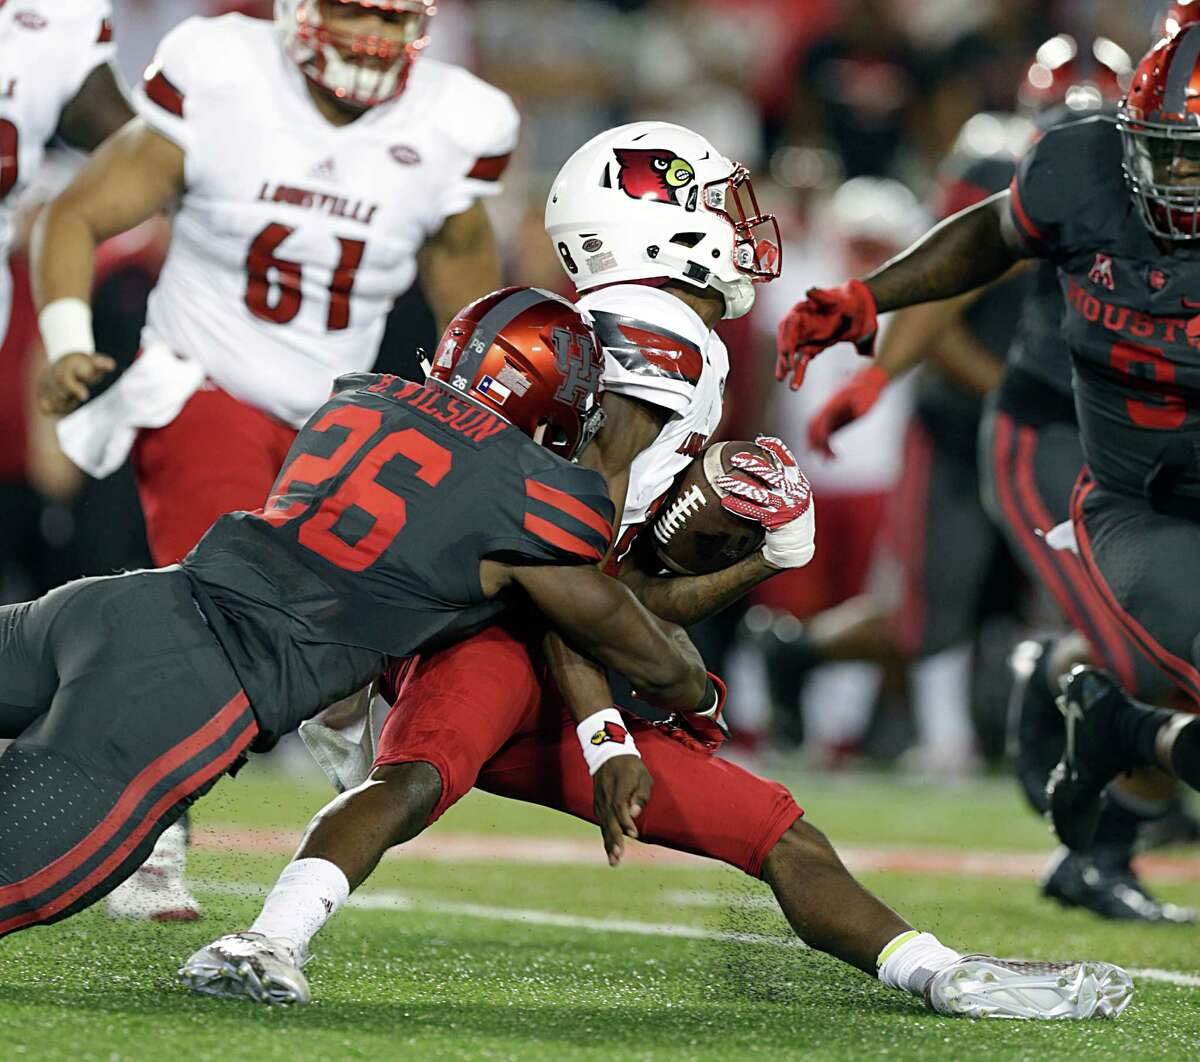 BIG WINS Louisville Date: Nov. 17, 2016 Attendance: 42,822  The Cougars built a 31-point lead and a swarming defense sacked eventual Heisman Trophy winner Lamar Jackson 11 times in a 36-10 blowout of the third-ranked Cardinals. Duke Catalon accounted for three touchdowns.